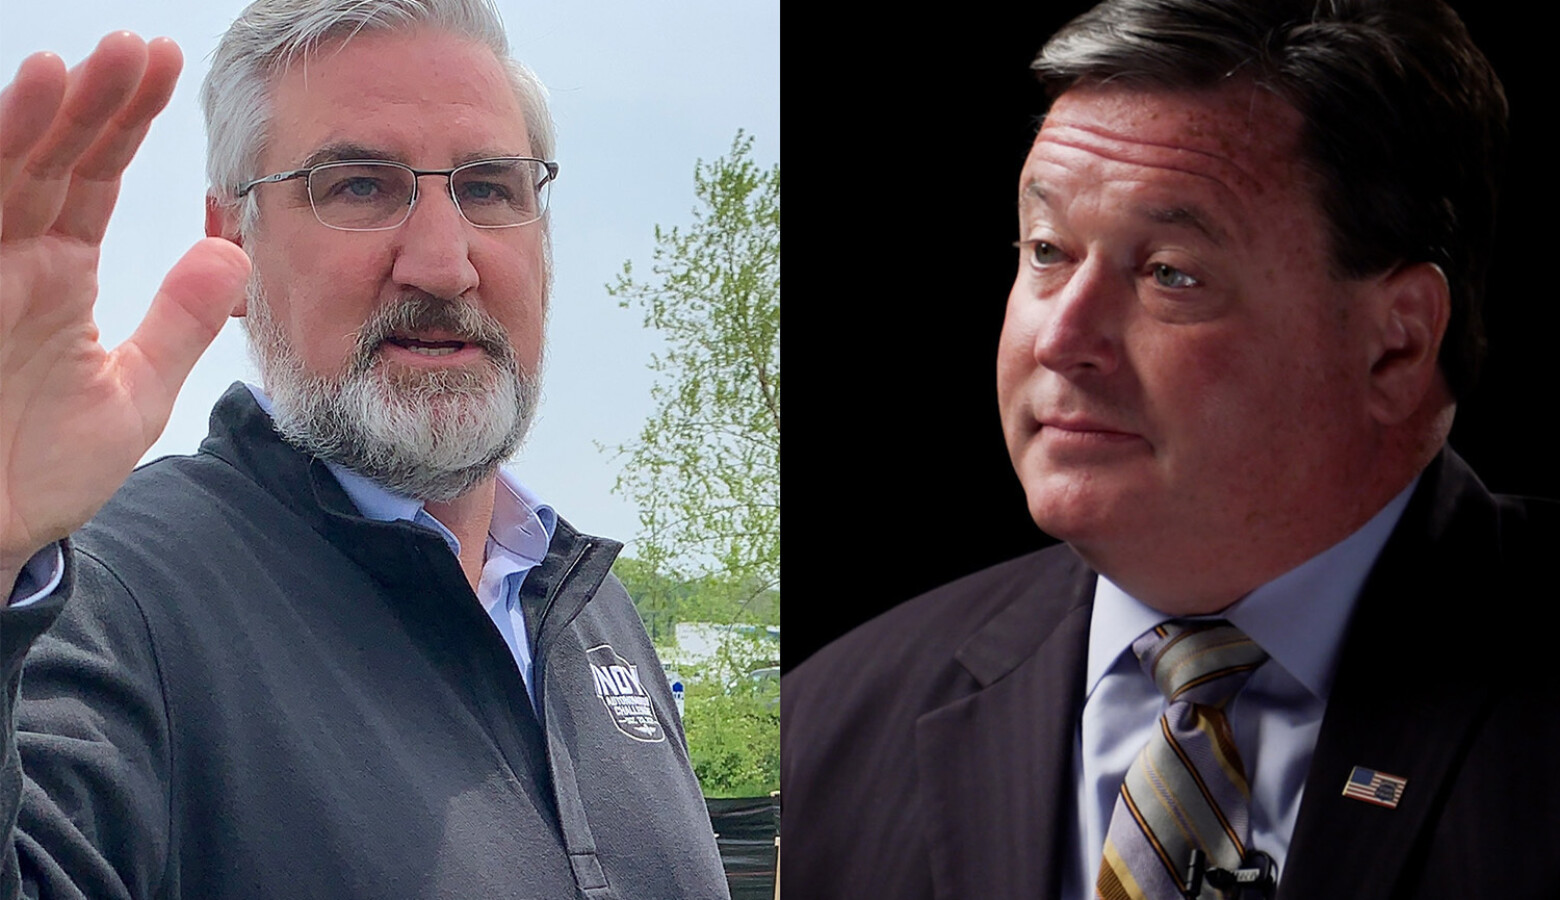 Attorneys for Gov. Eric Holcomb, left, and Attorney General Todd Rokita, right, faced off in county court over a lawsuit challenging a new emergency powers law. (Brandon Smith/IPB News, Alan Mbathi/IPB News)